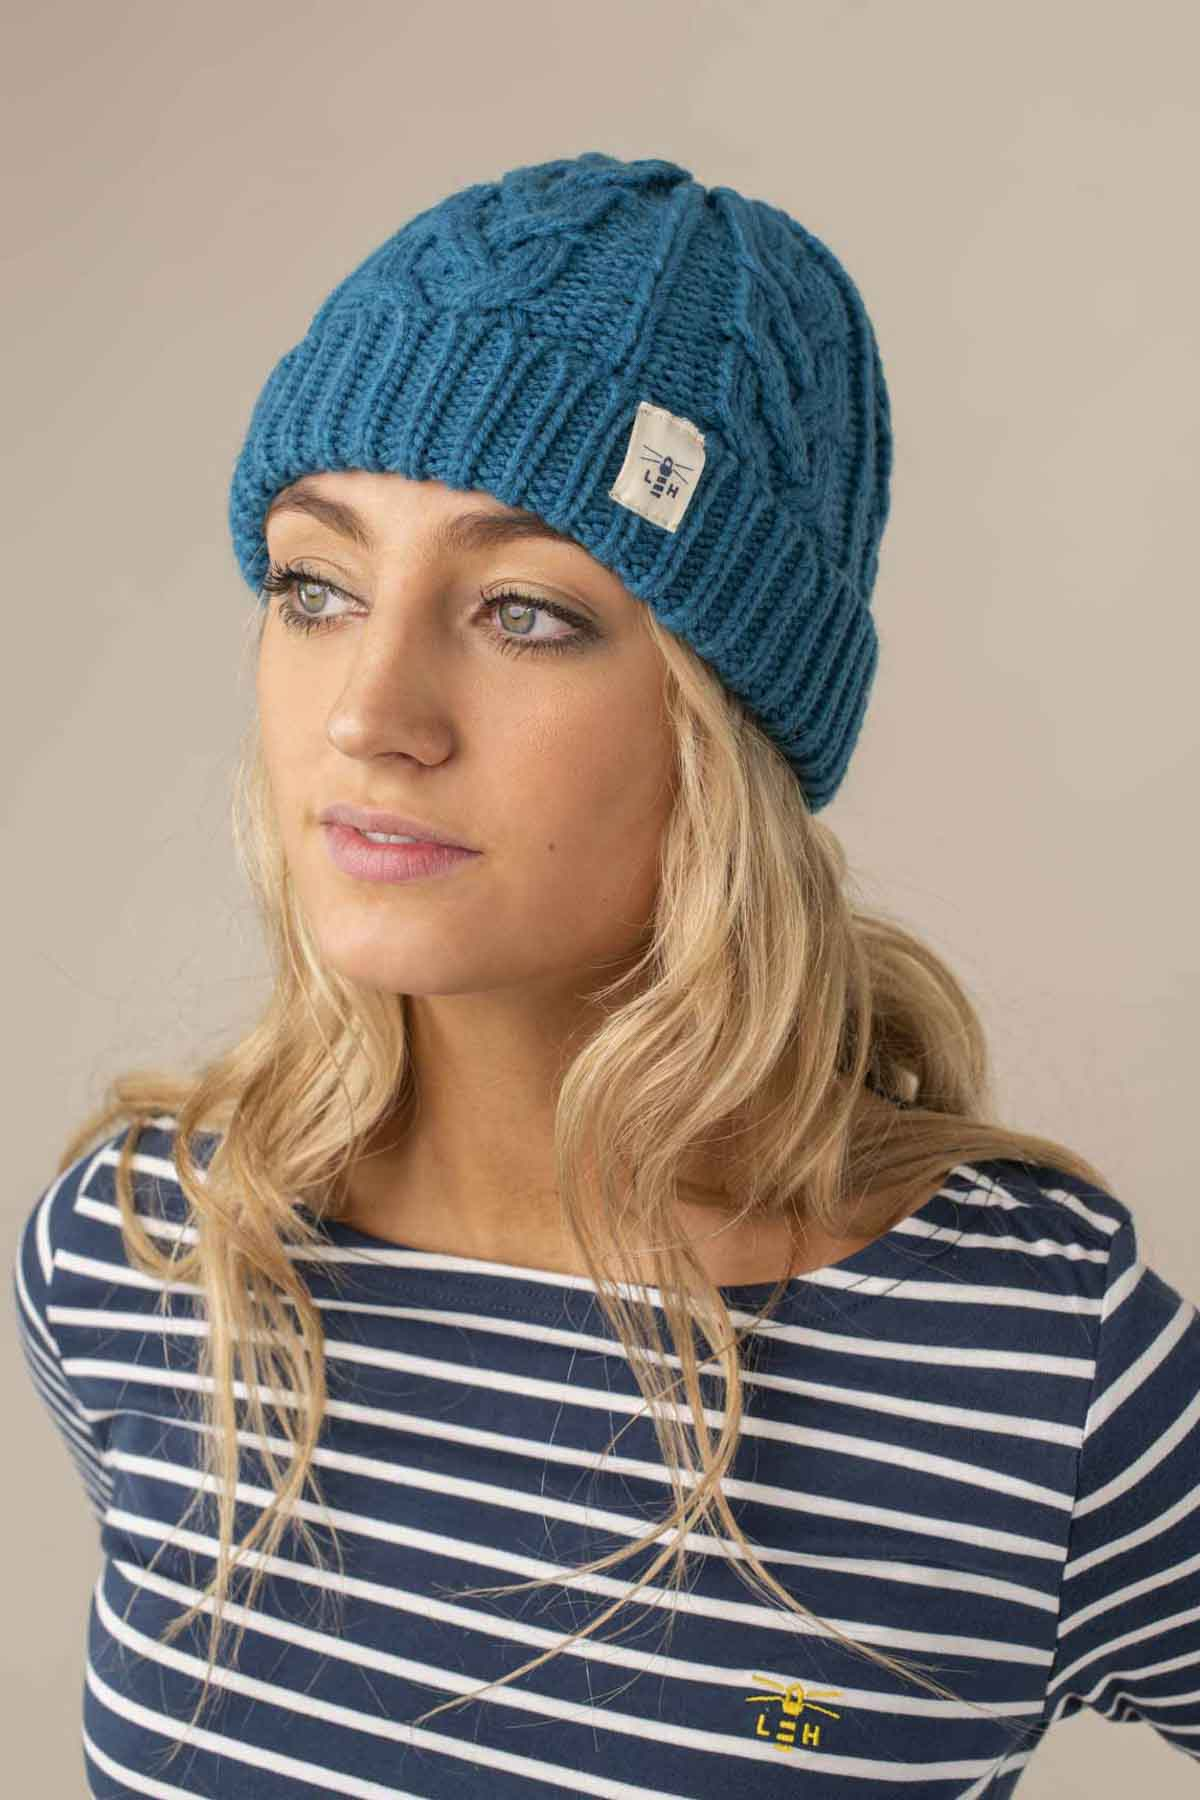 Hannah Beanie. Deep Blue Cable Knit Style | Lighthouse